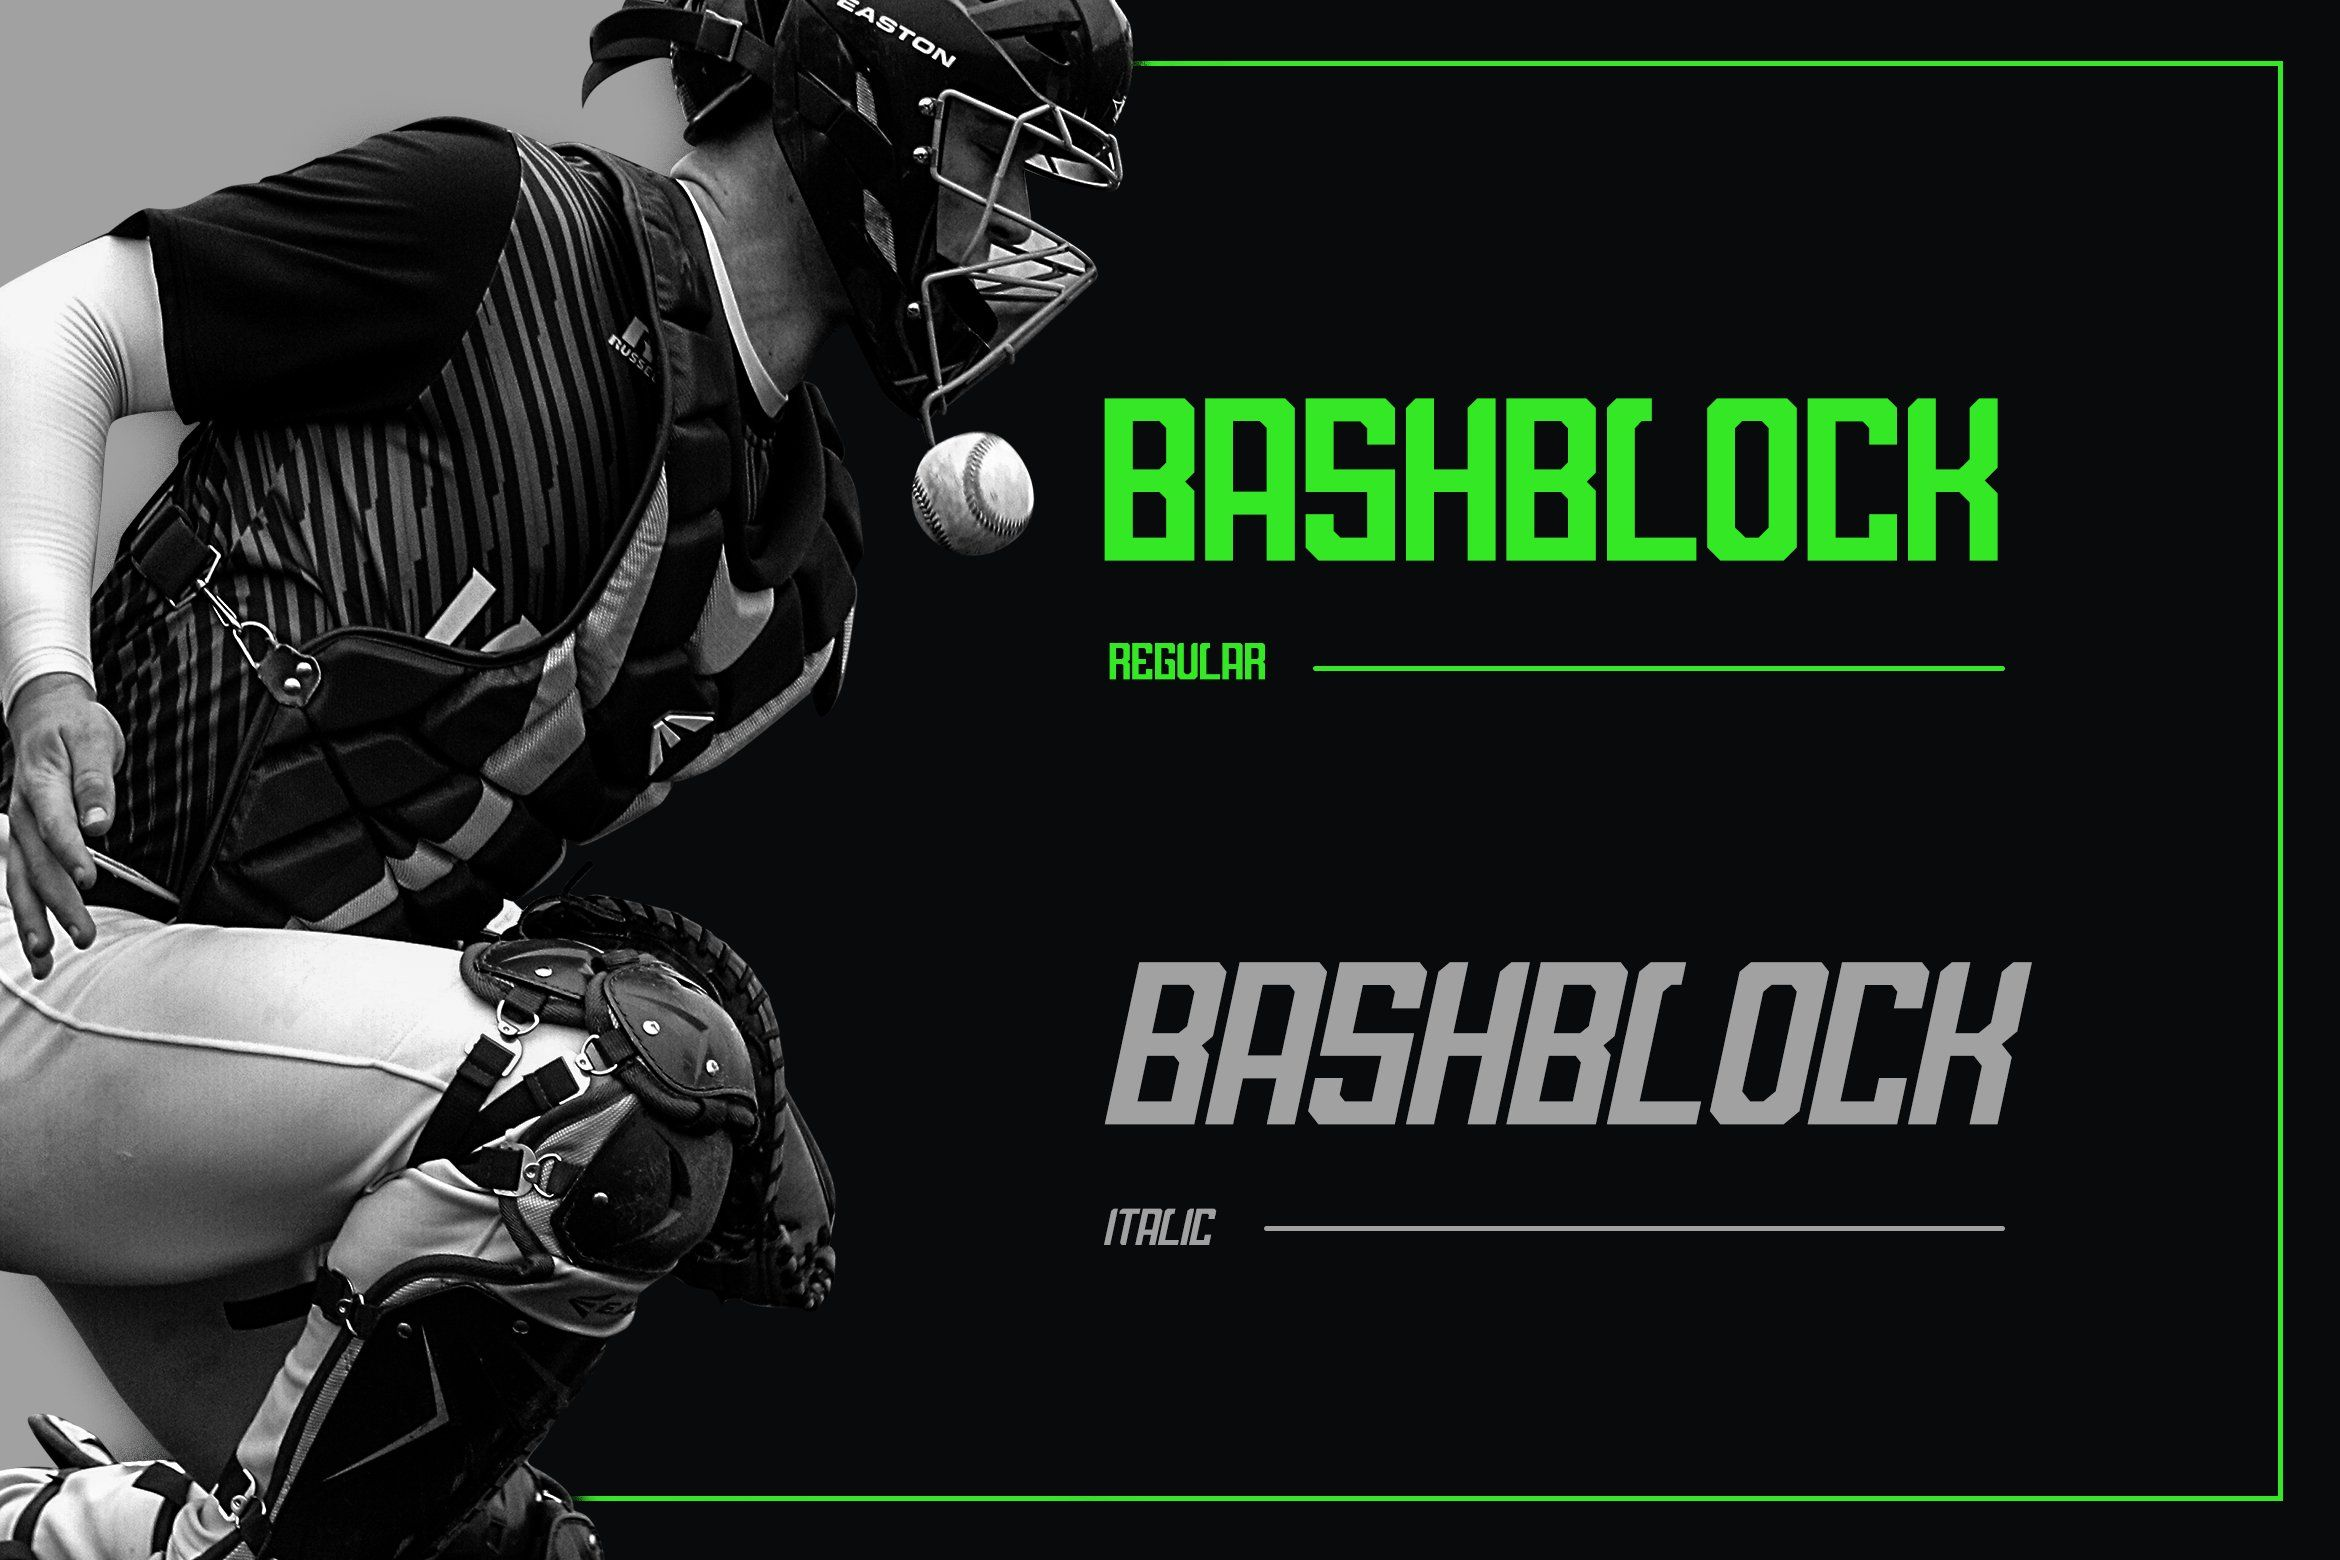 Bashblock Display Font With Images